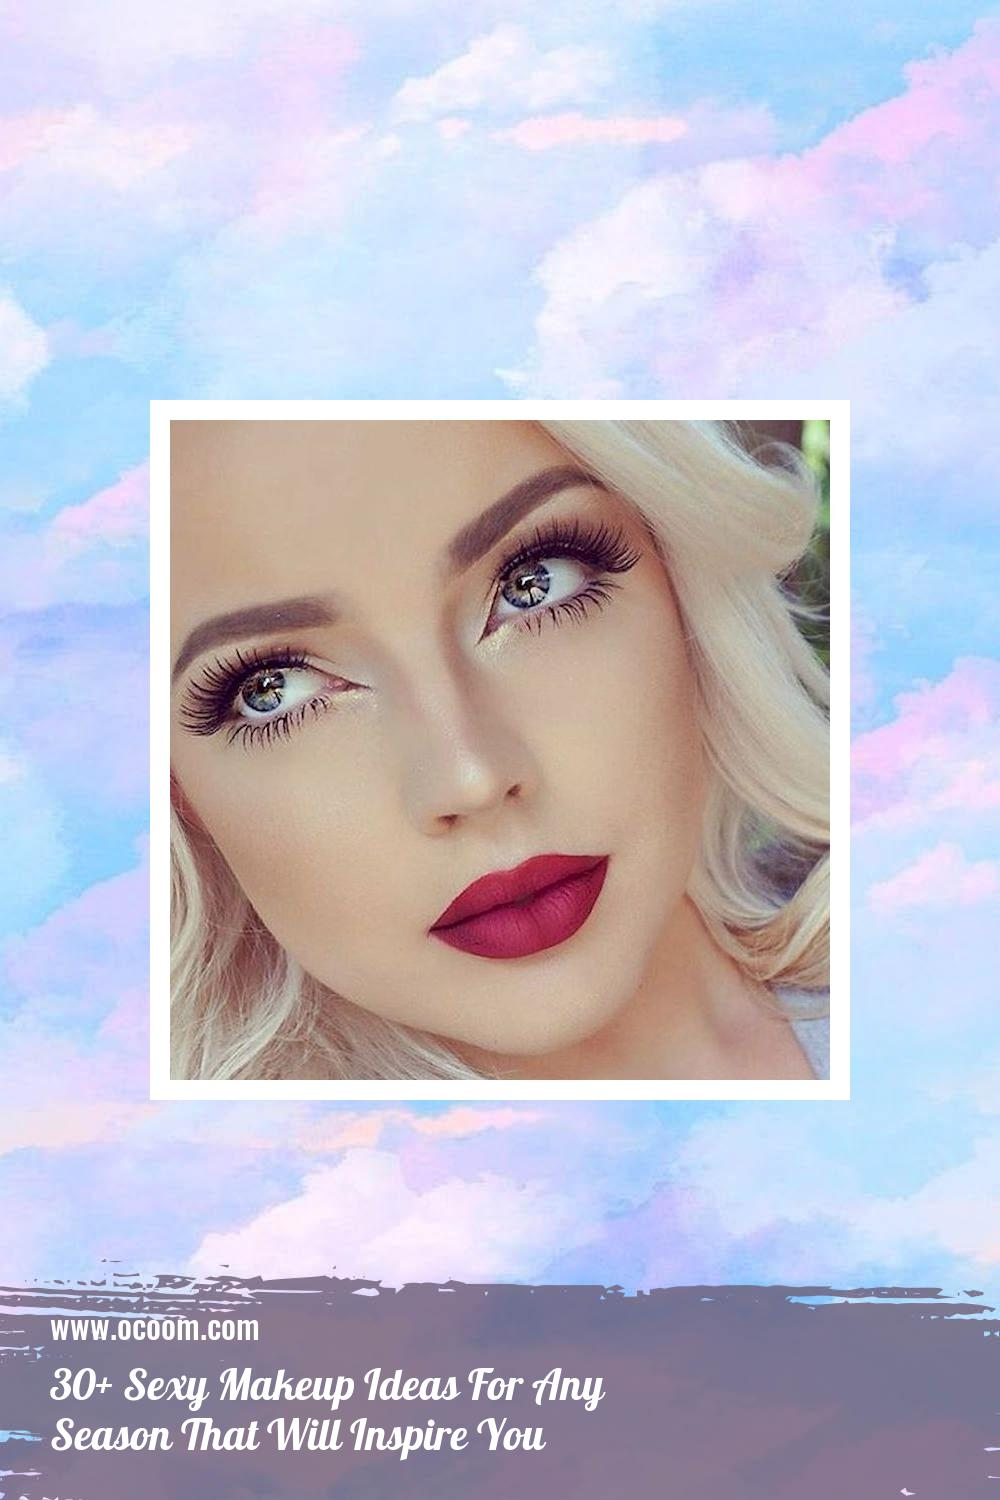 30+ Sexy Makeup Ideas For Any Season That Will Inspire You 15